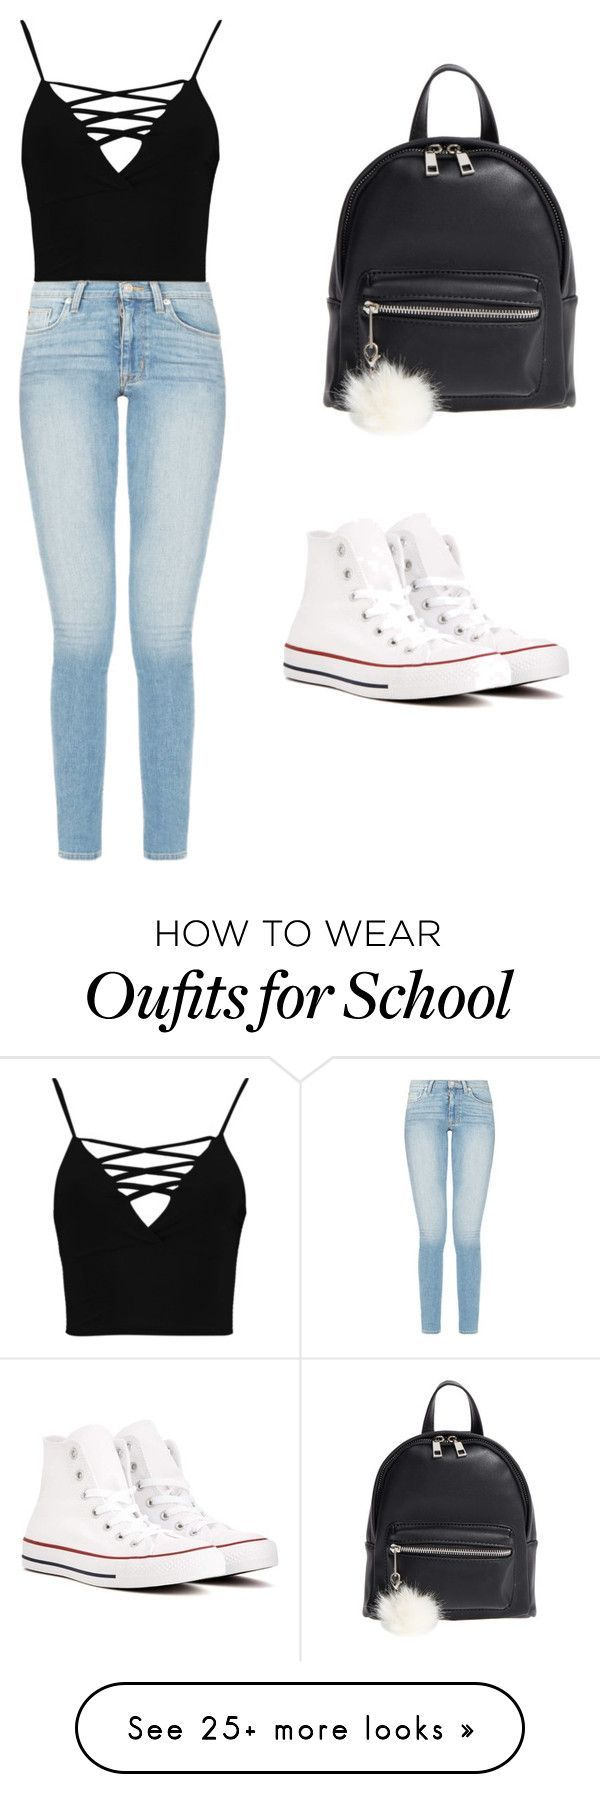 """School Outfit #3 #dresscode"" by nyanamartin on Polyvore featuring Boohoo, Converse and BP."